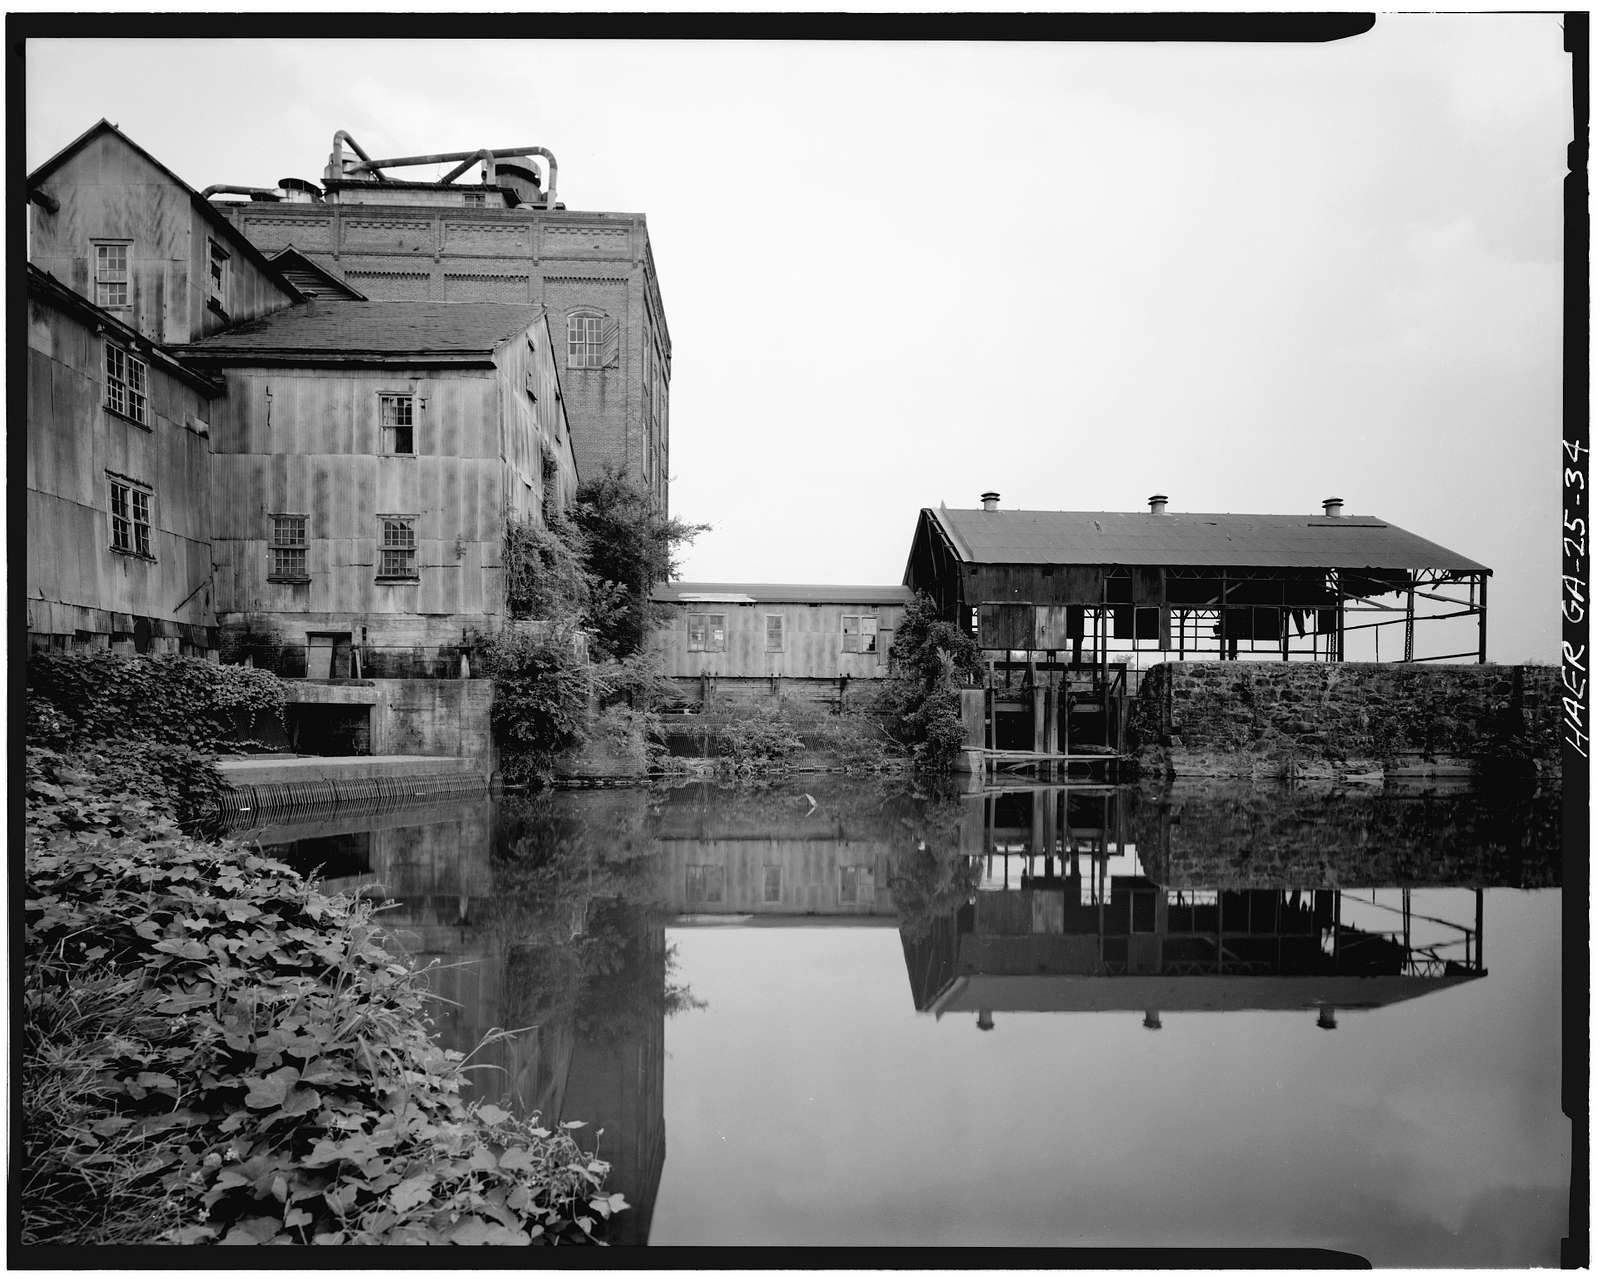 City Mills Company, Eighteenth Street & First Avenue, Columbus, Muscogee County, GA